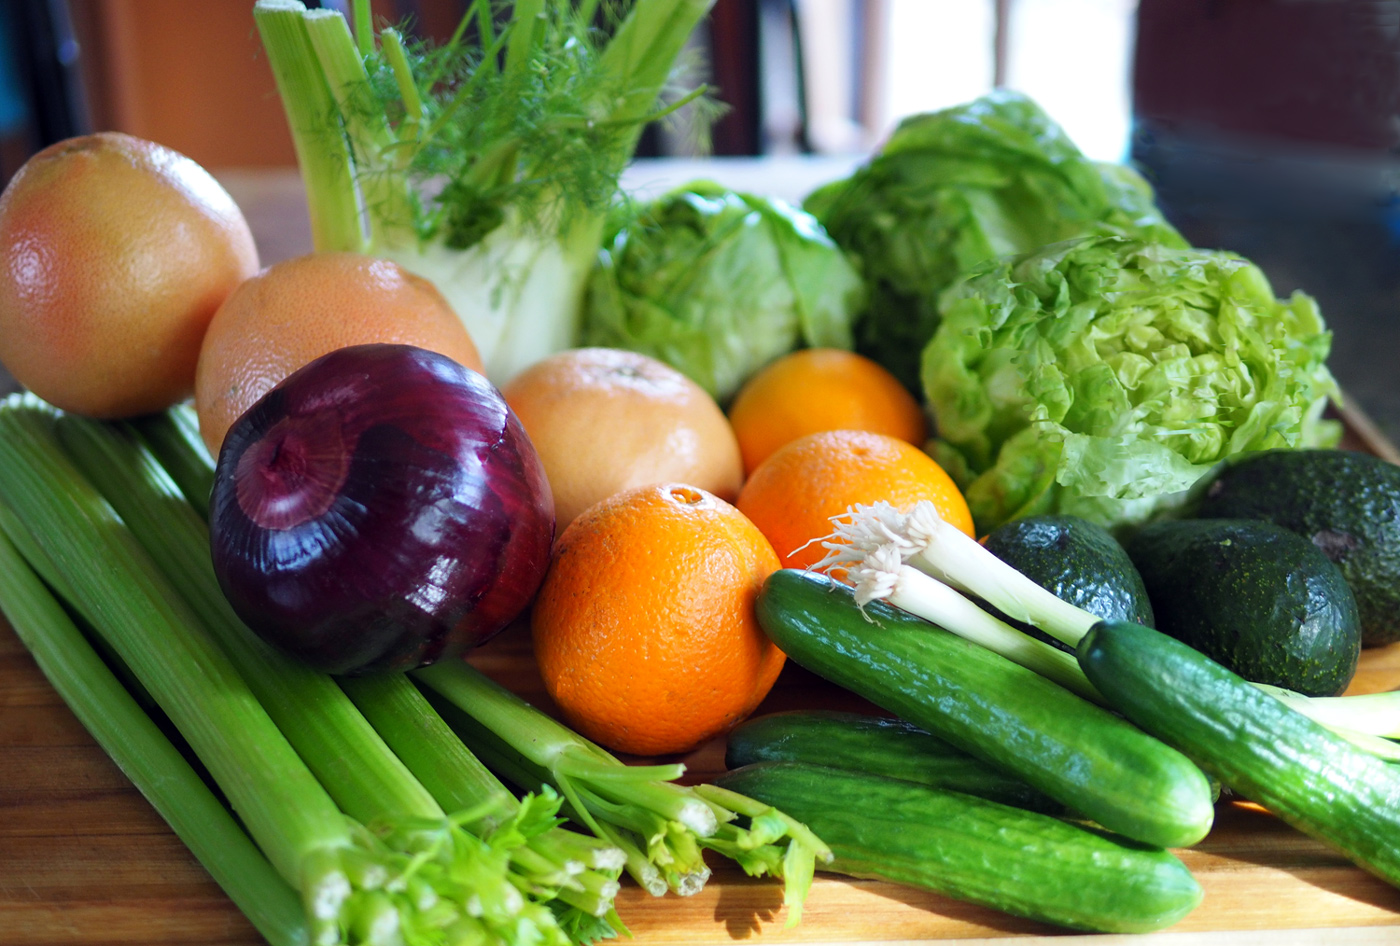 Your starting line up of glorious greens and oranges colors of nutritious, deliciousness.